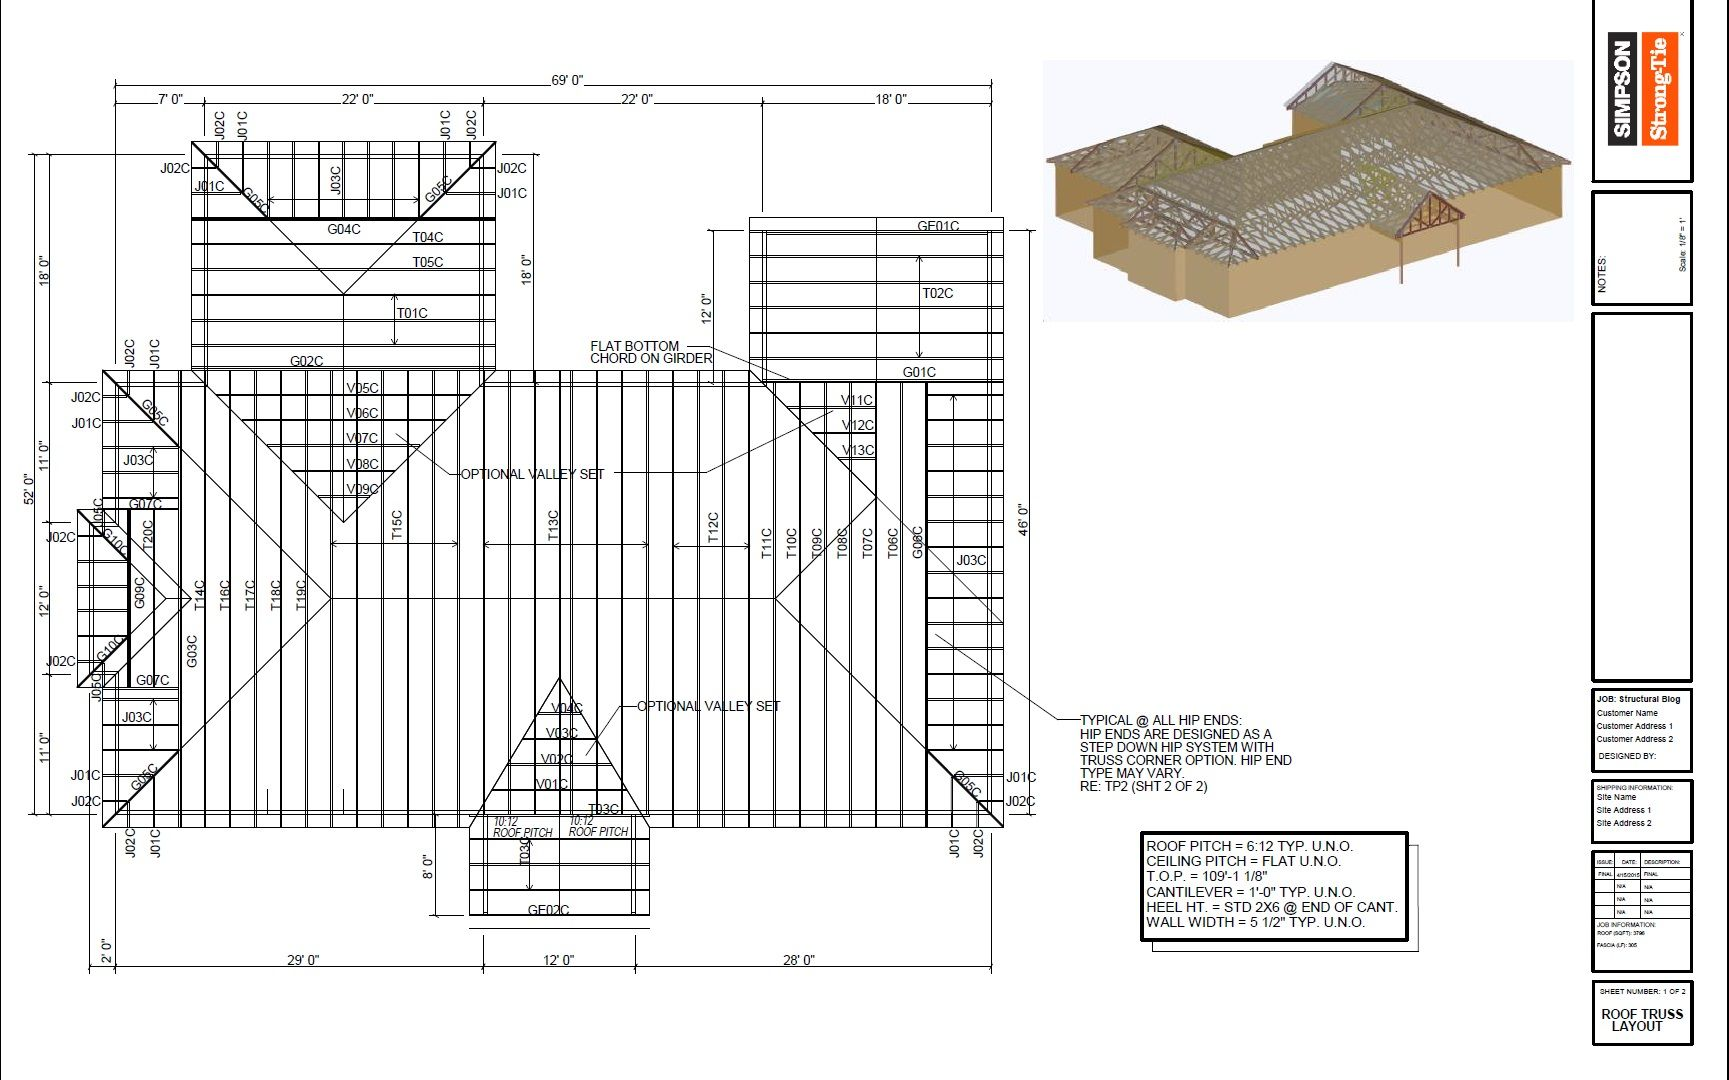 Image Result For Roof Truss Plans Details Pinterest